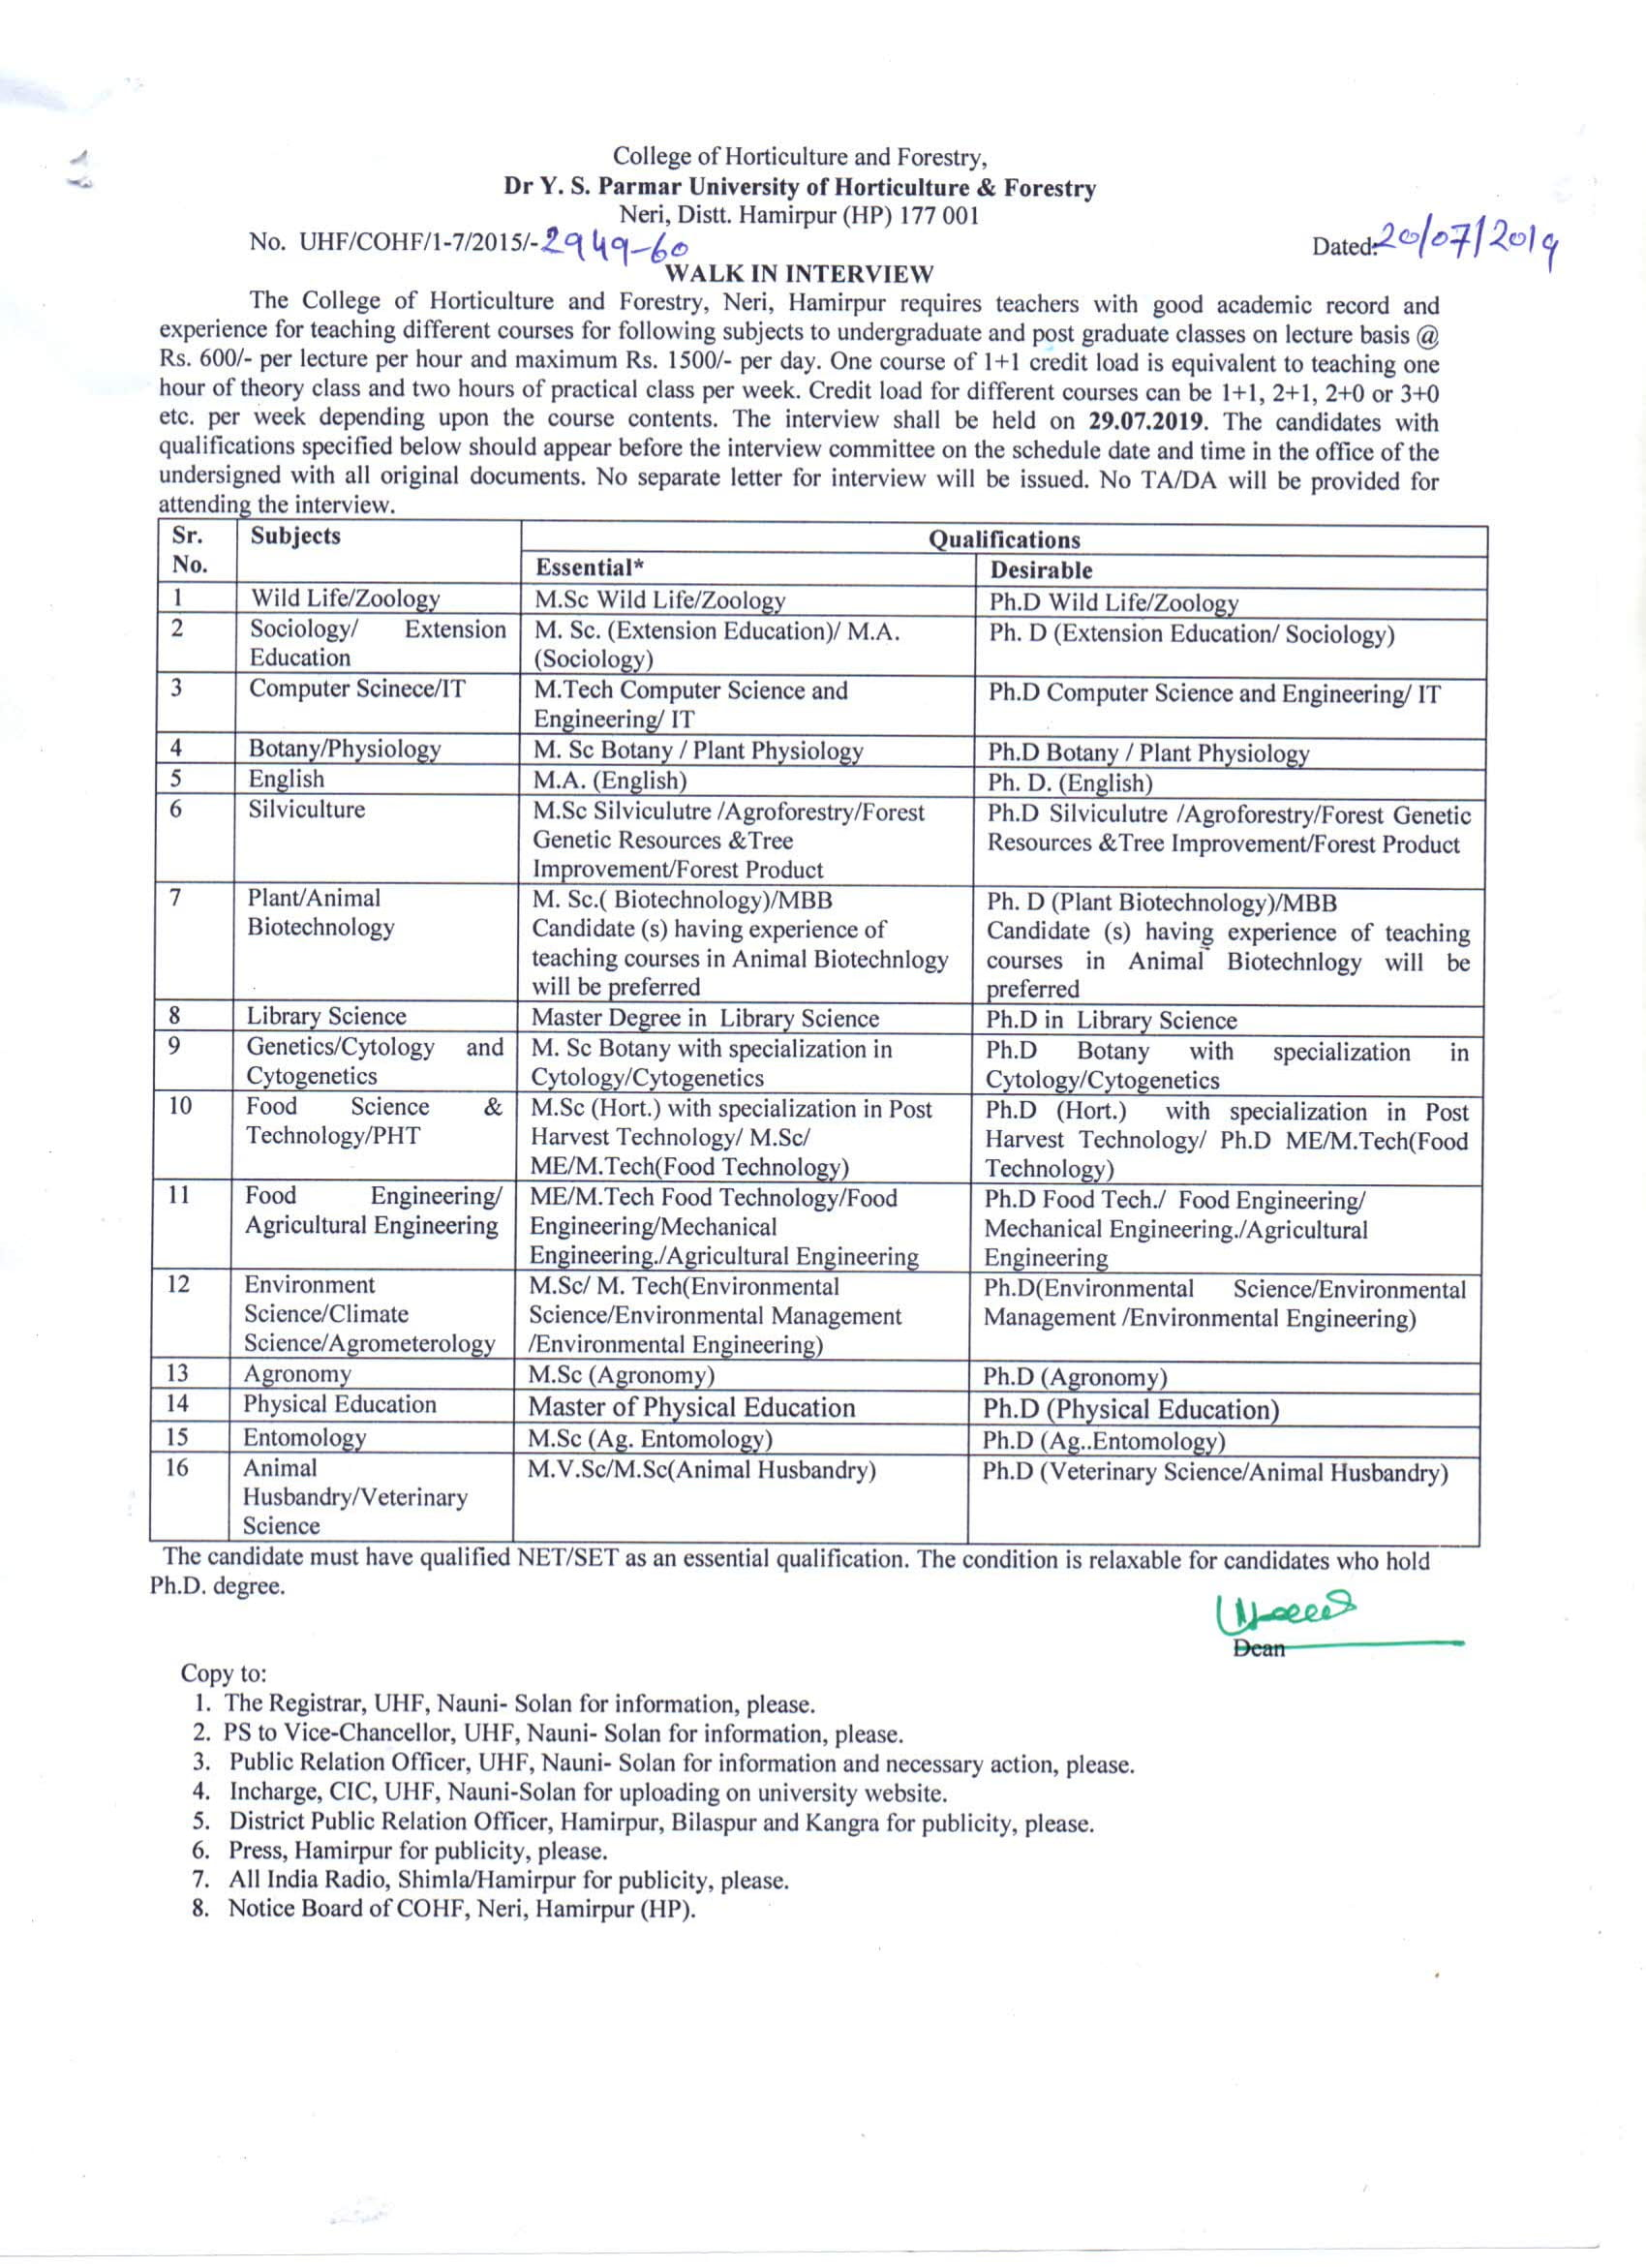 Walk-In-Interview for Teacher Post at College of